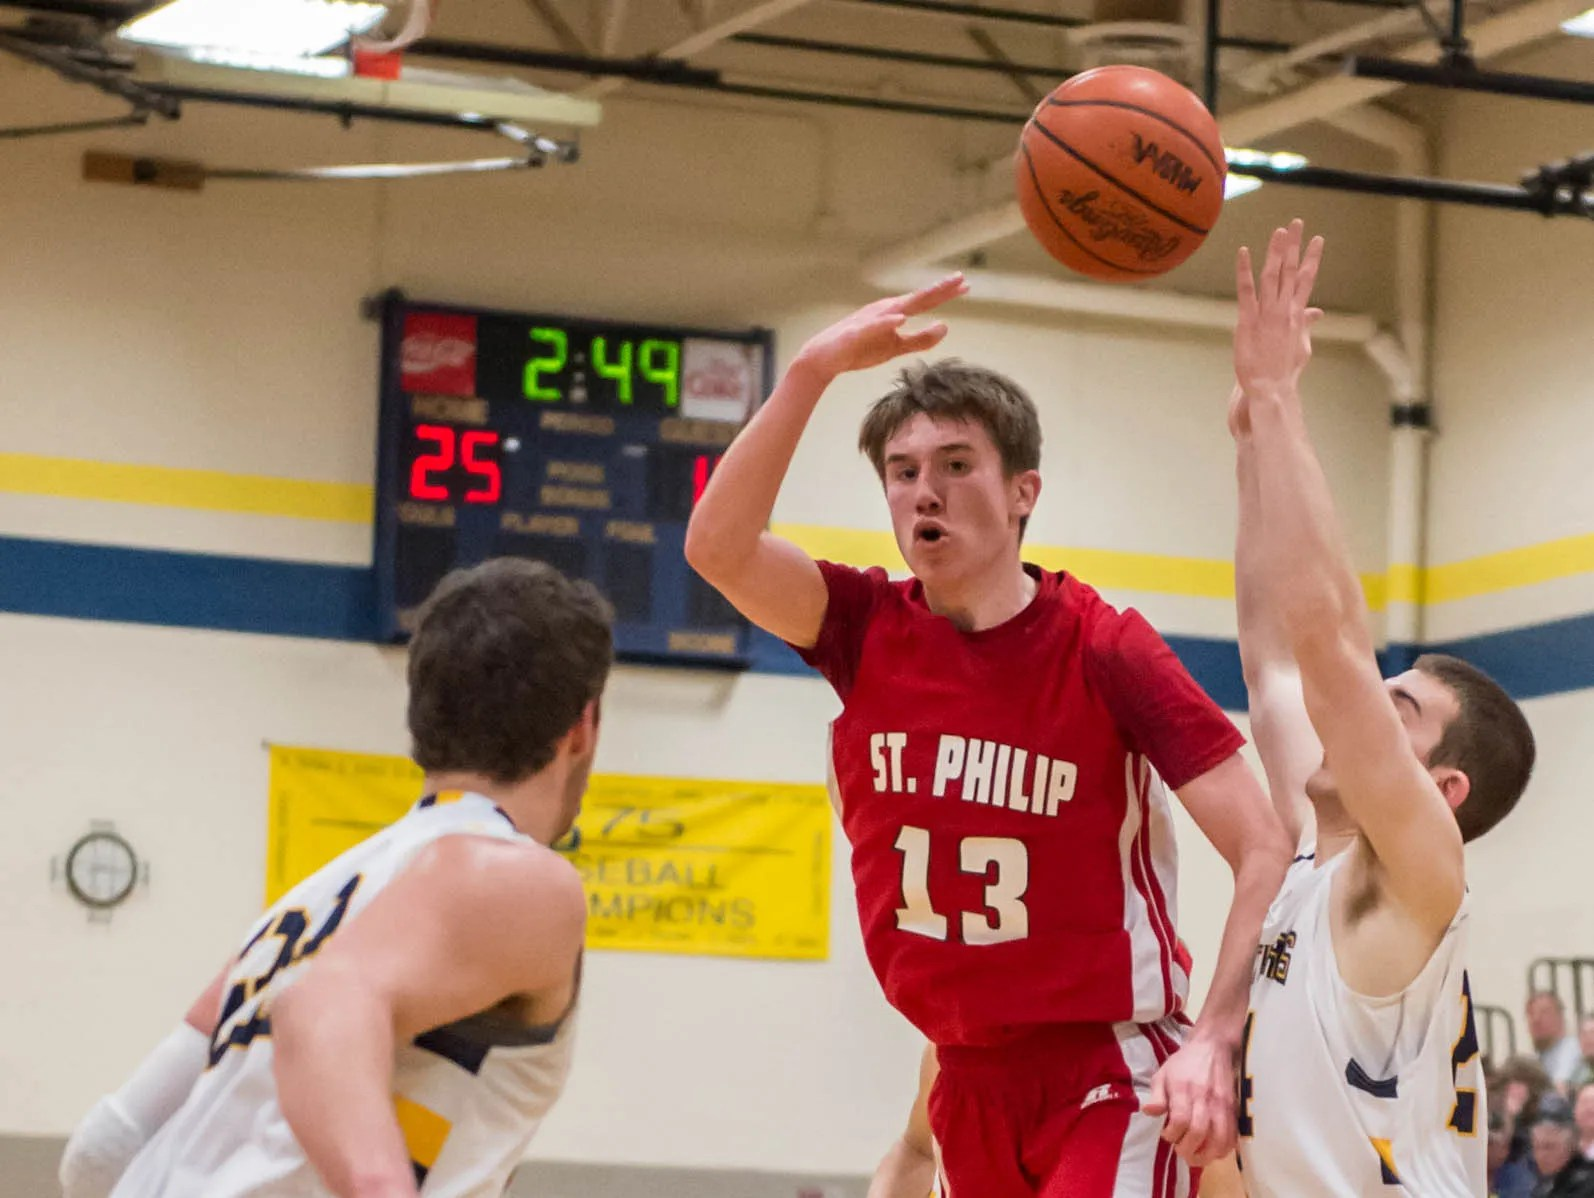 Climax-Scotts stops St. Philip in rivalry game, 75-52 | USA TODAY ...